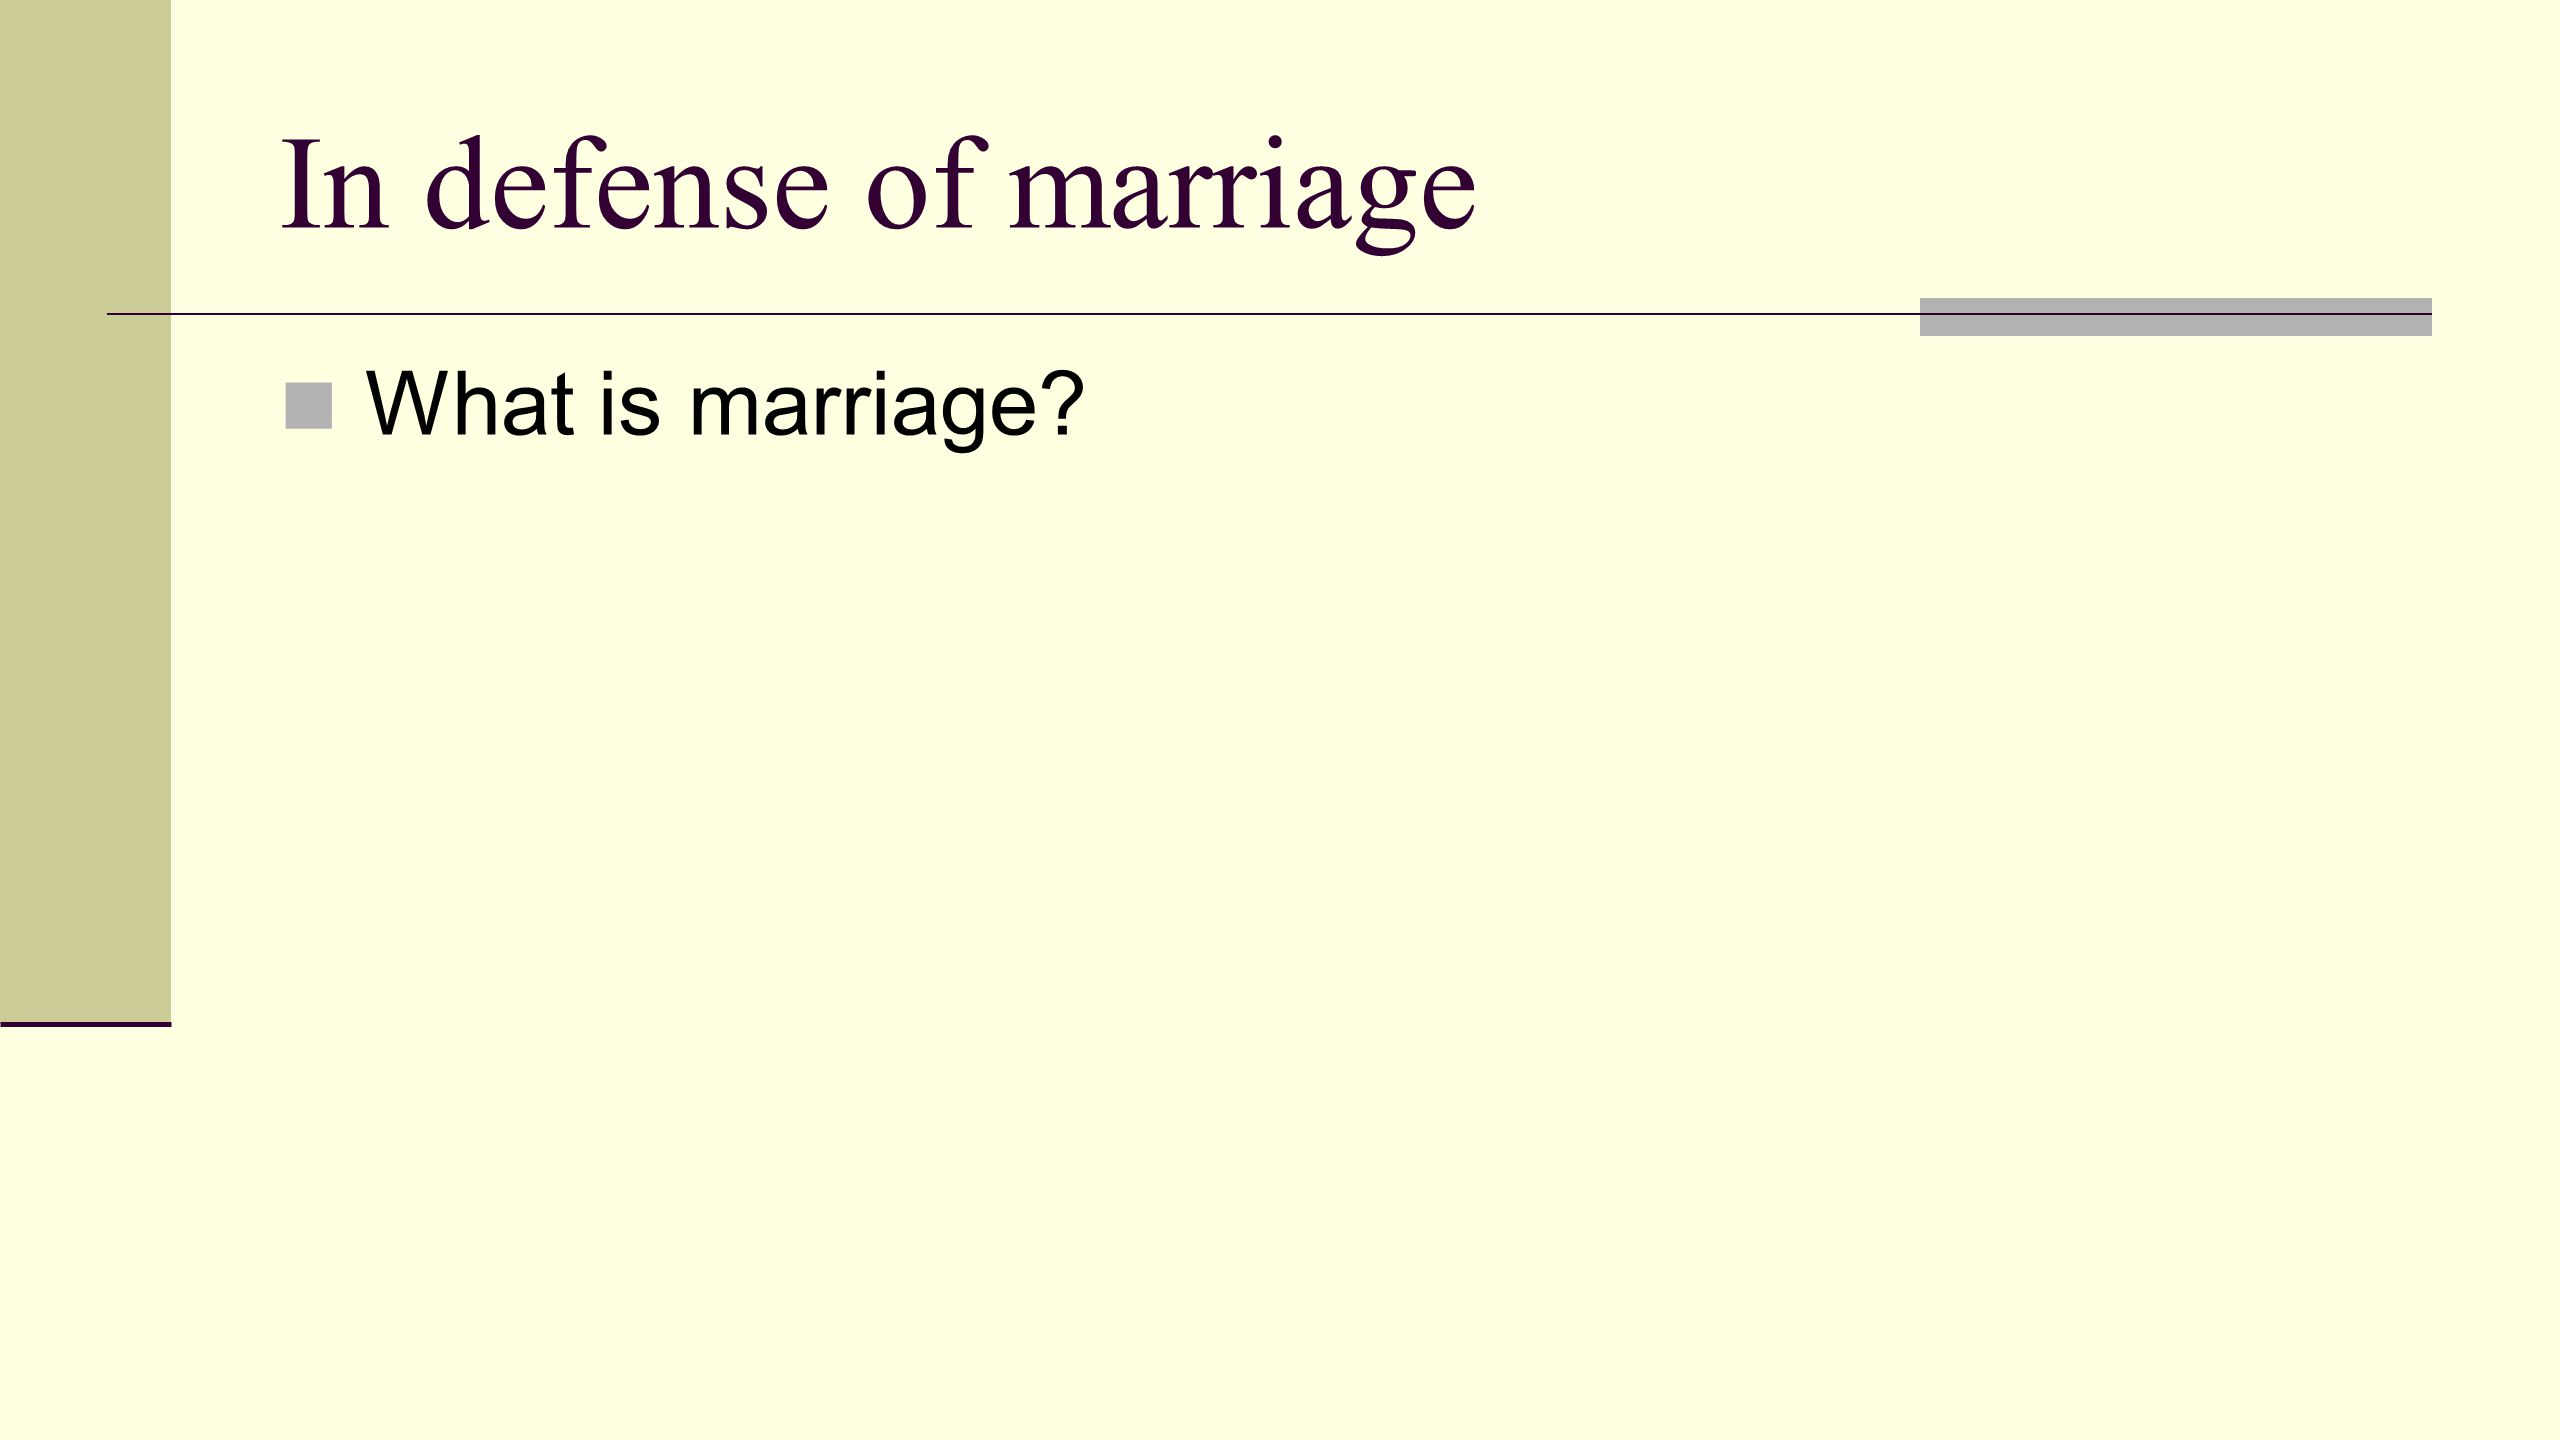 In defense of marriage What is marriage